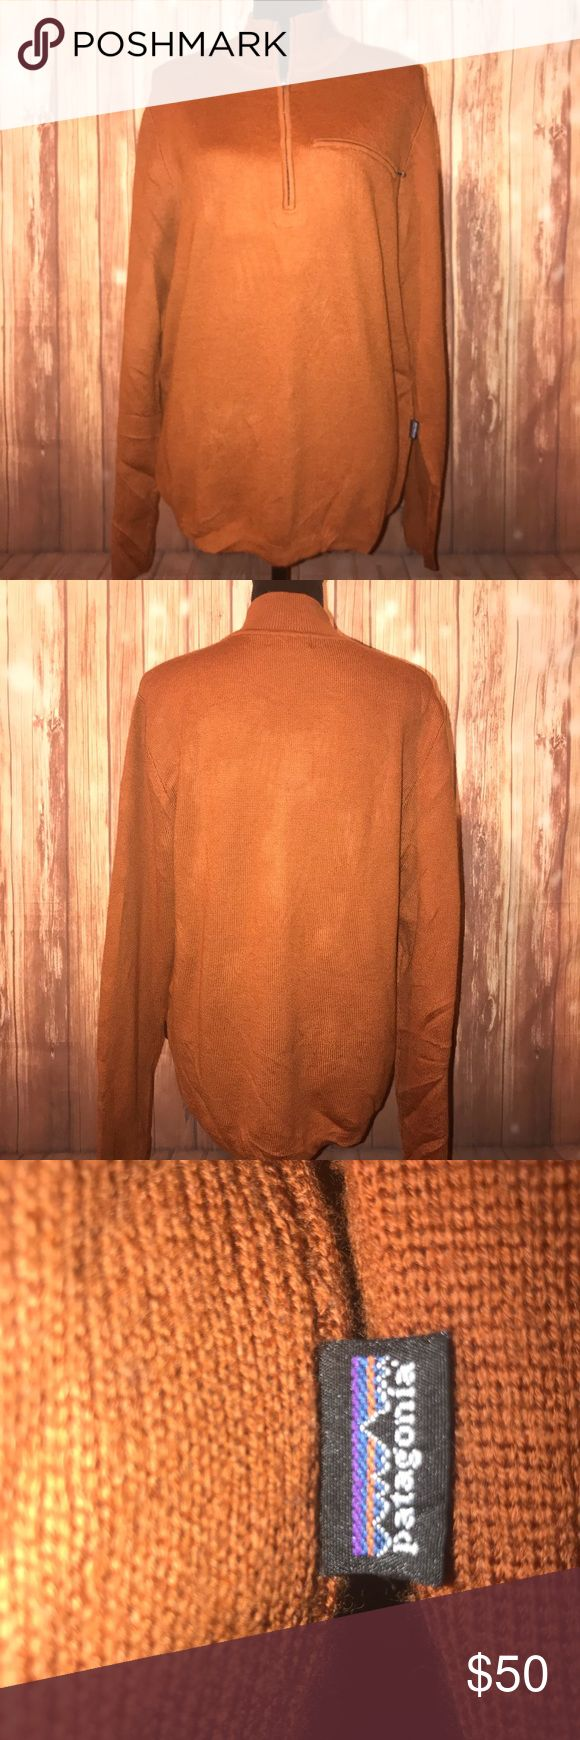 Patagonia Men's Copper Half ZIP Sweater Patagonia Men's Brown Copper Half Zip Sweater Size: Large is in great condition. Patagonia Sweaters Zip Up